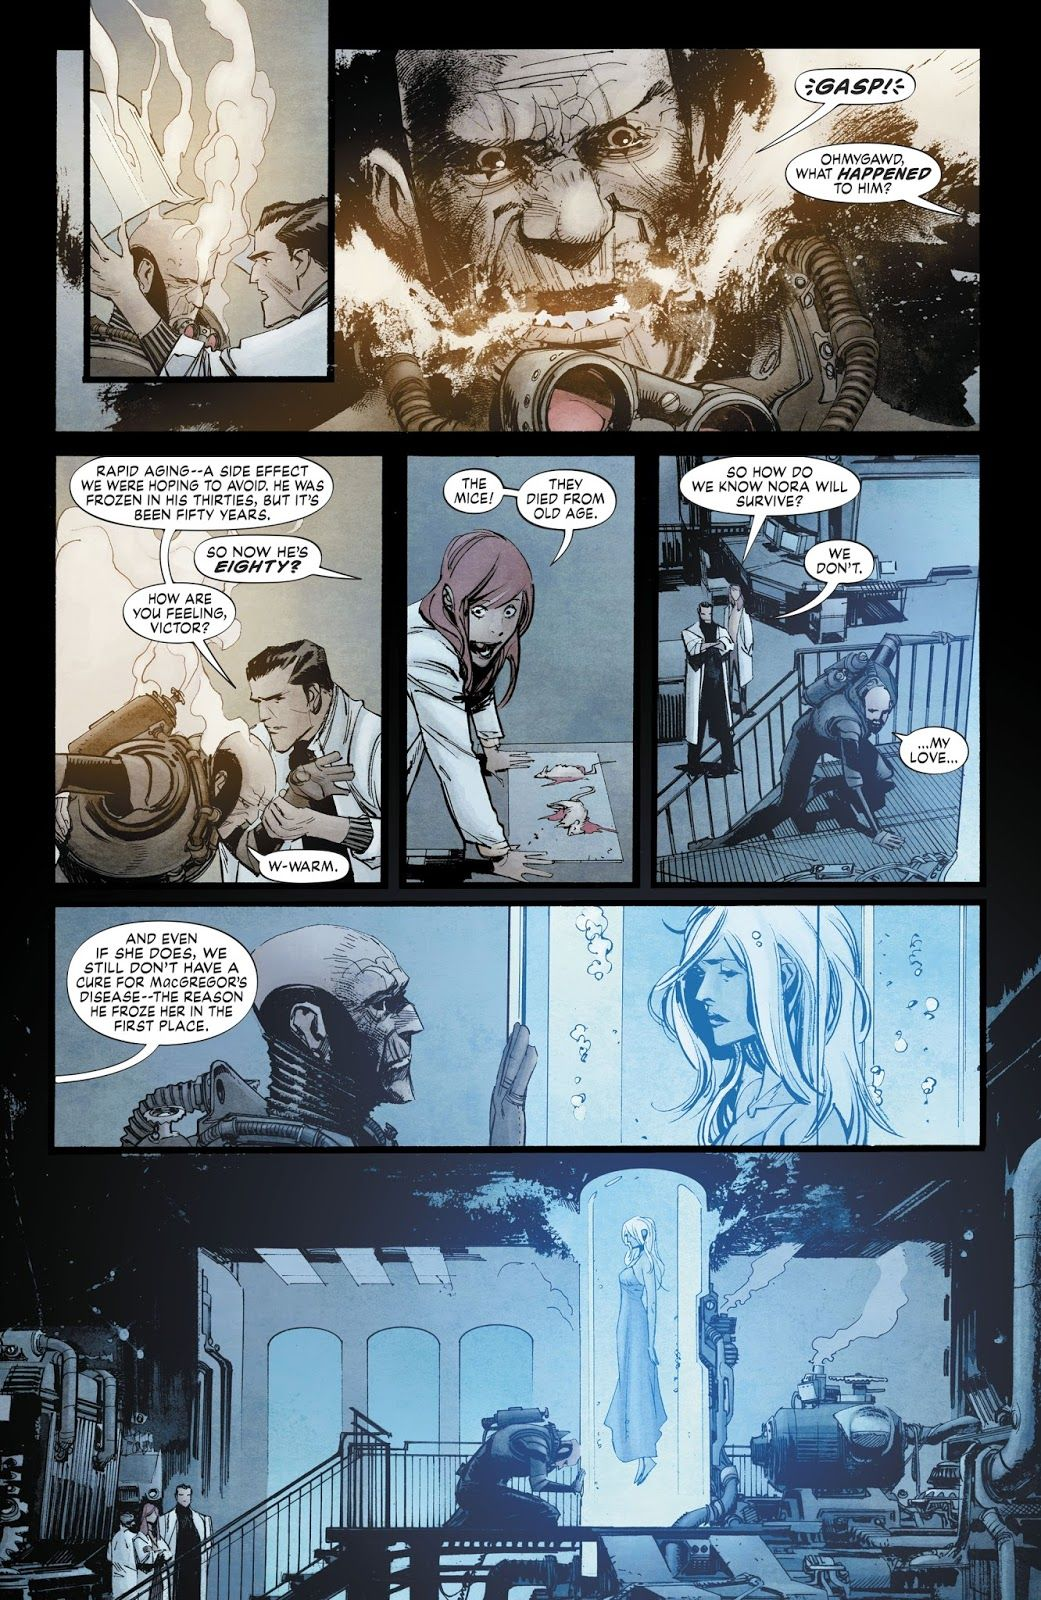 Batman white knight issue 2 read batman white knight issue 2 comic online in high quality